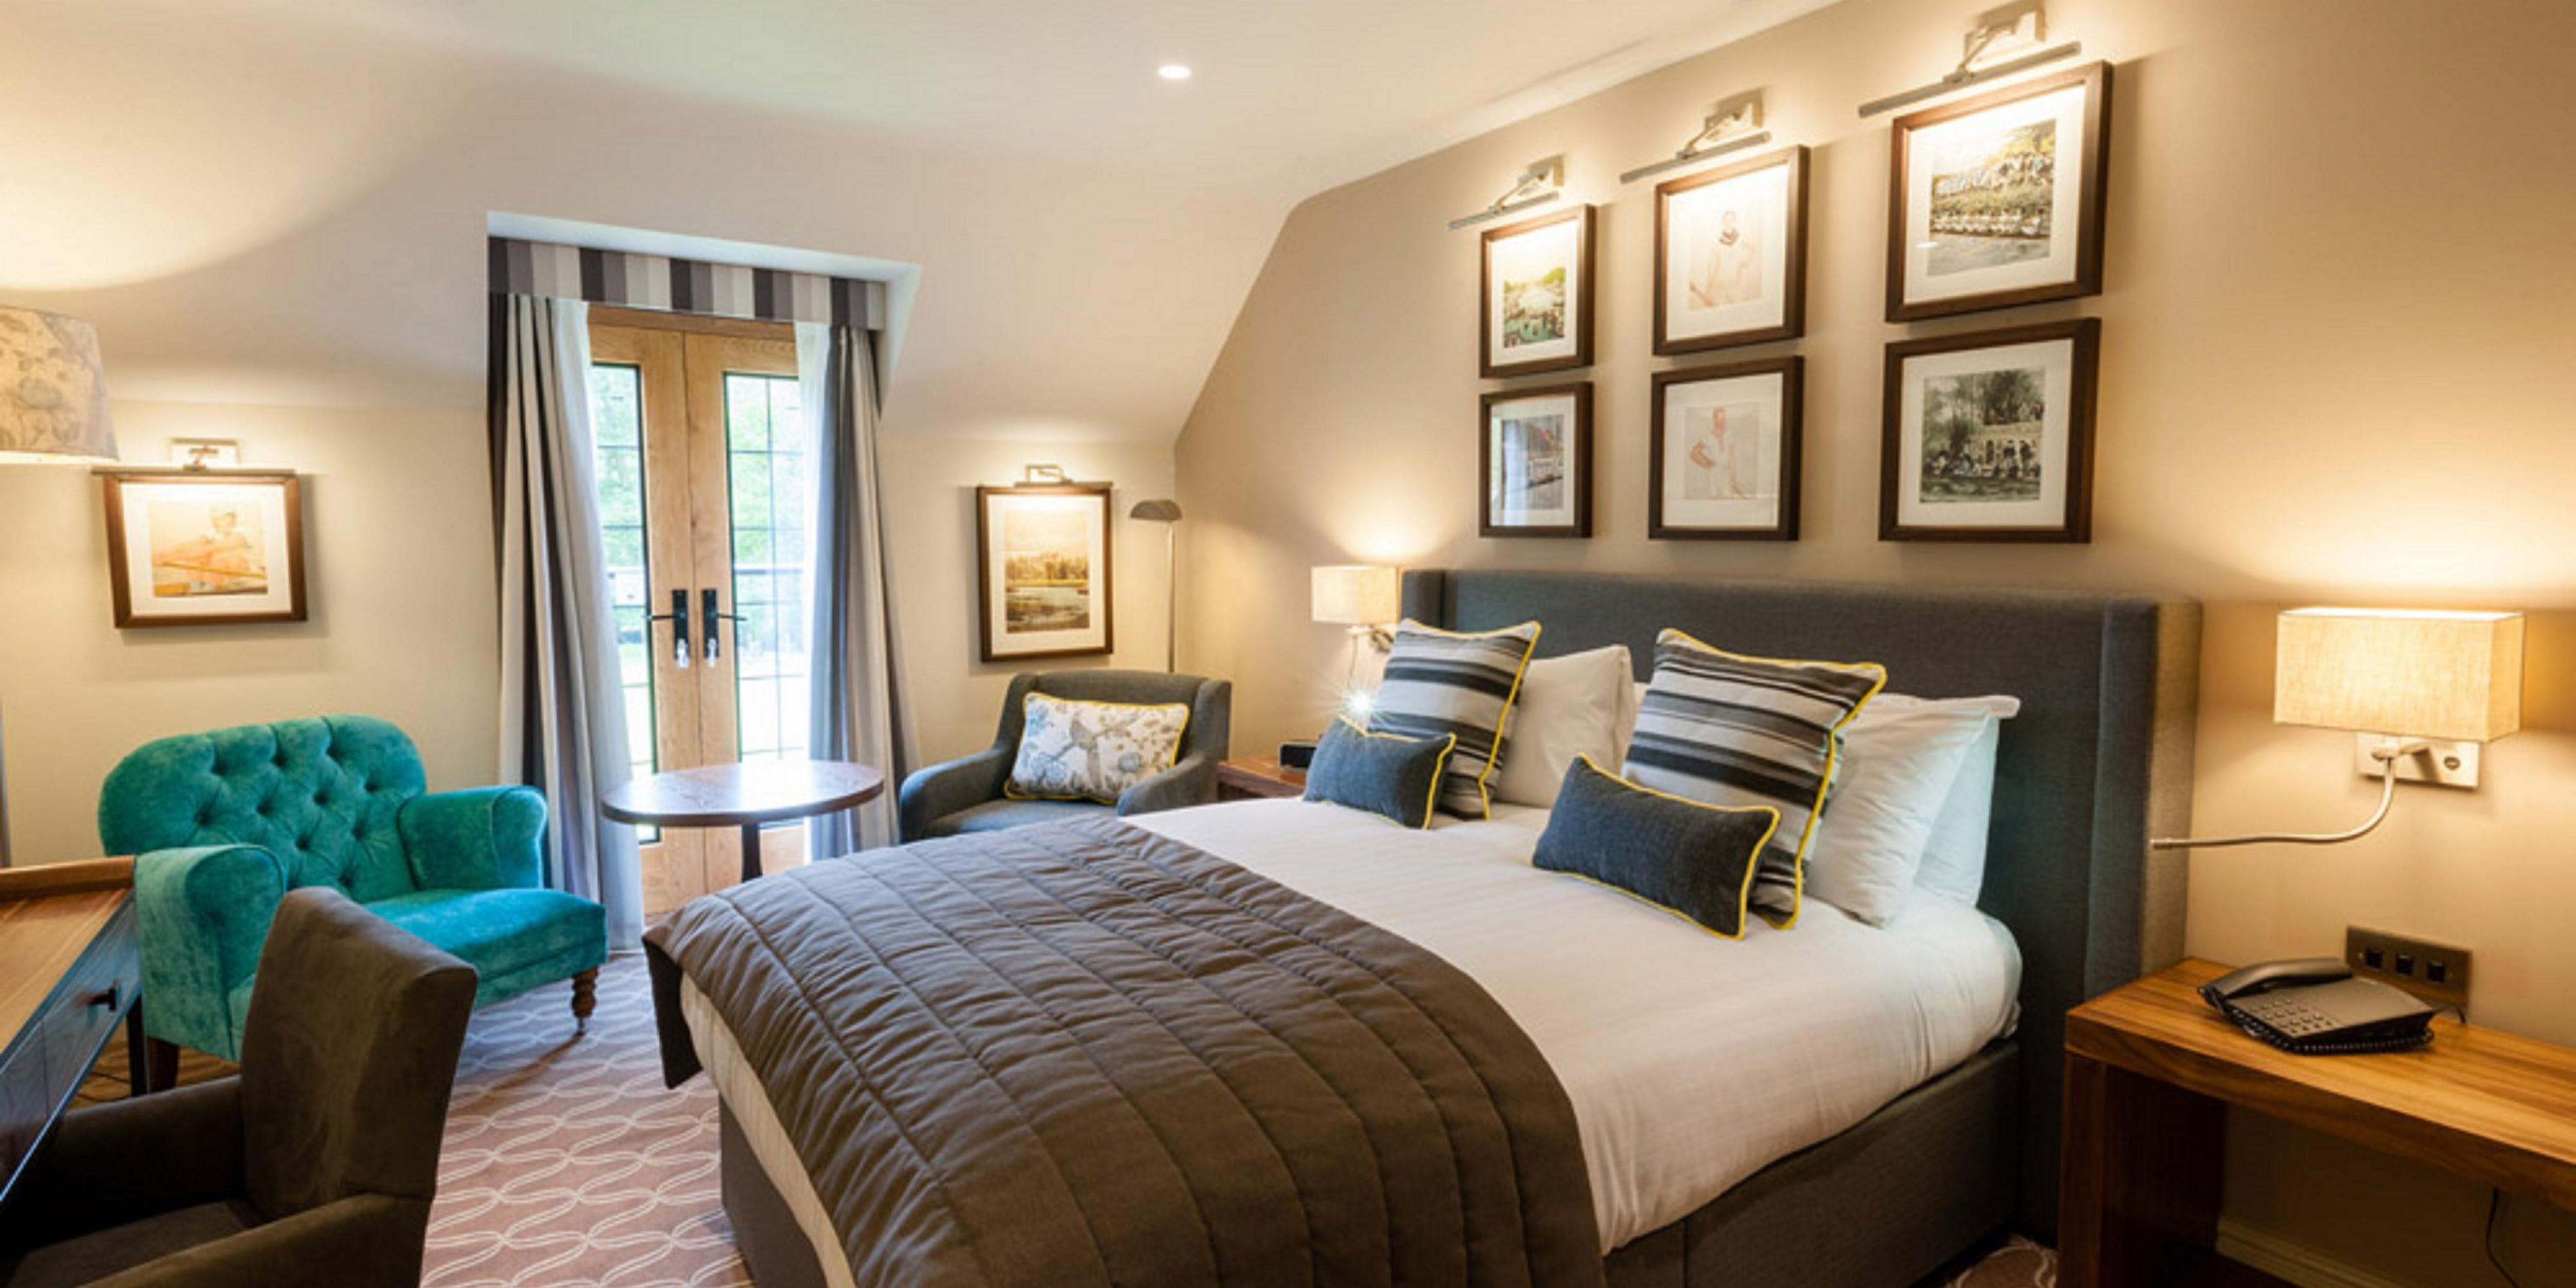 Space to relax, with balcony doors overlooking the River Thames